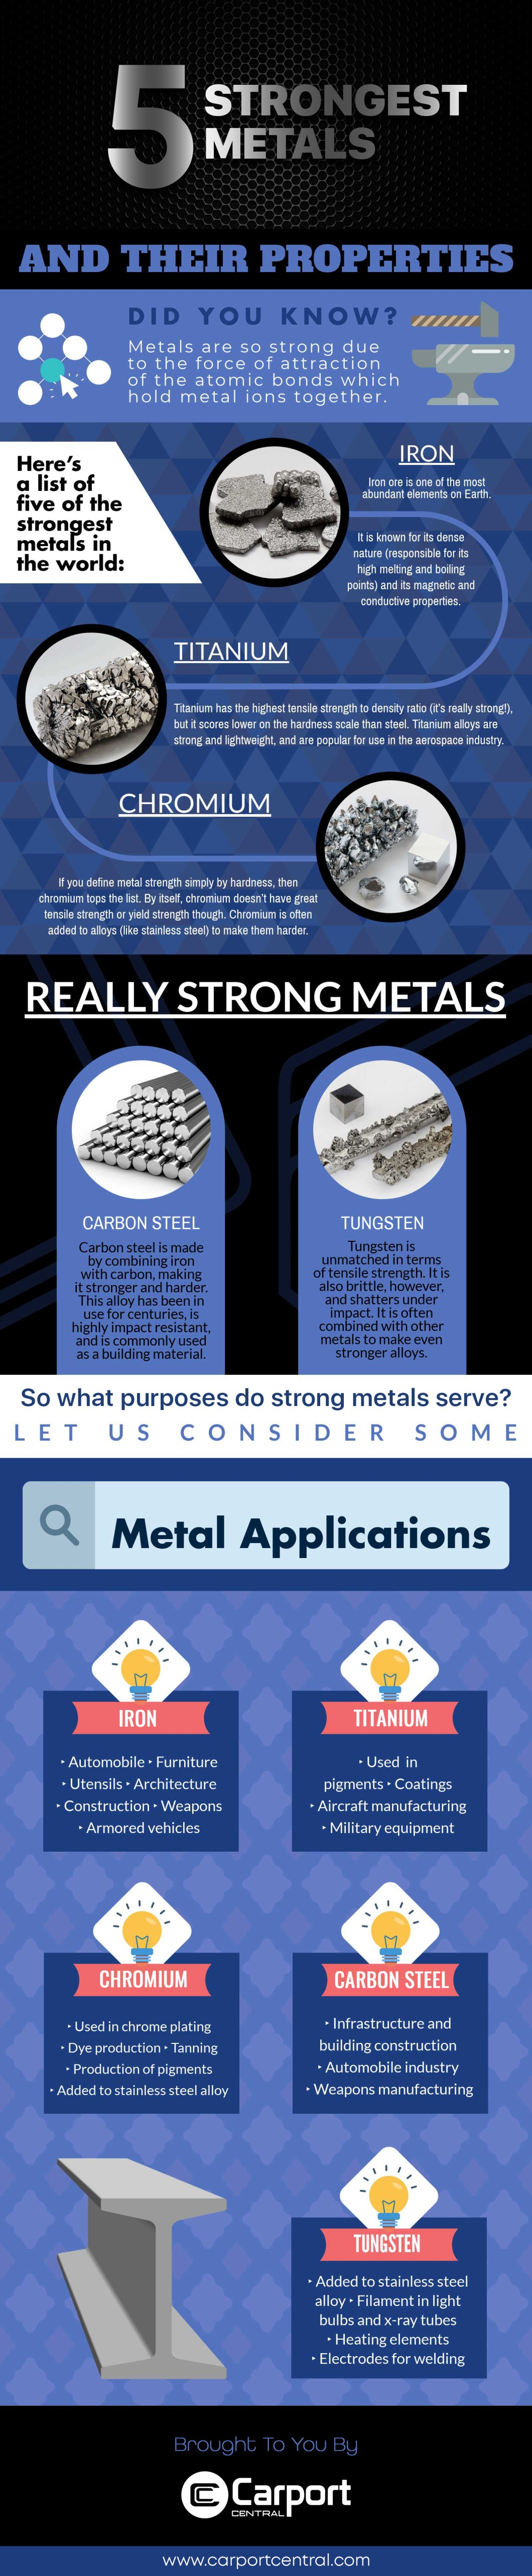 The Past and Future of Metals: Five Strongest Metals Known to Man - Infographic